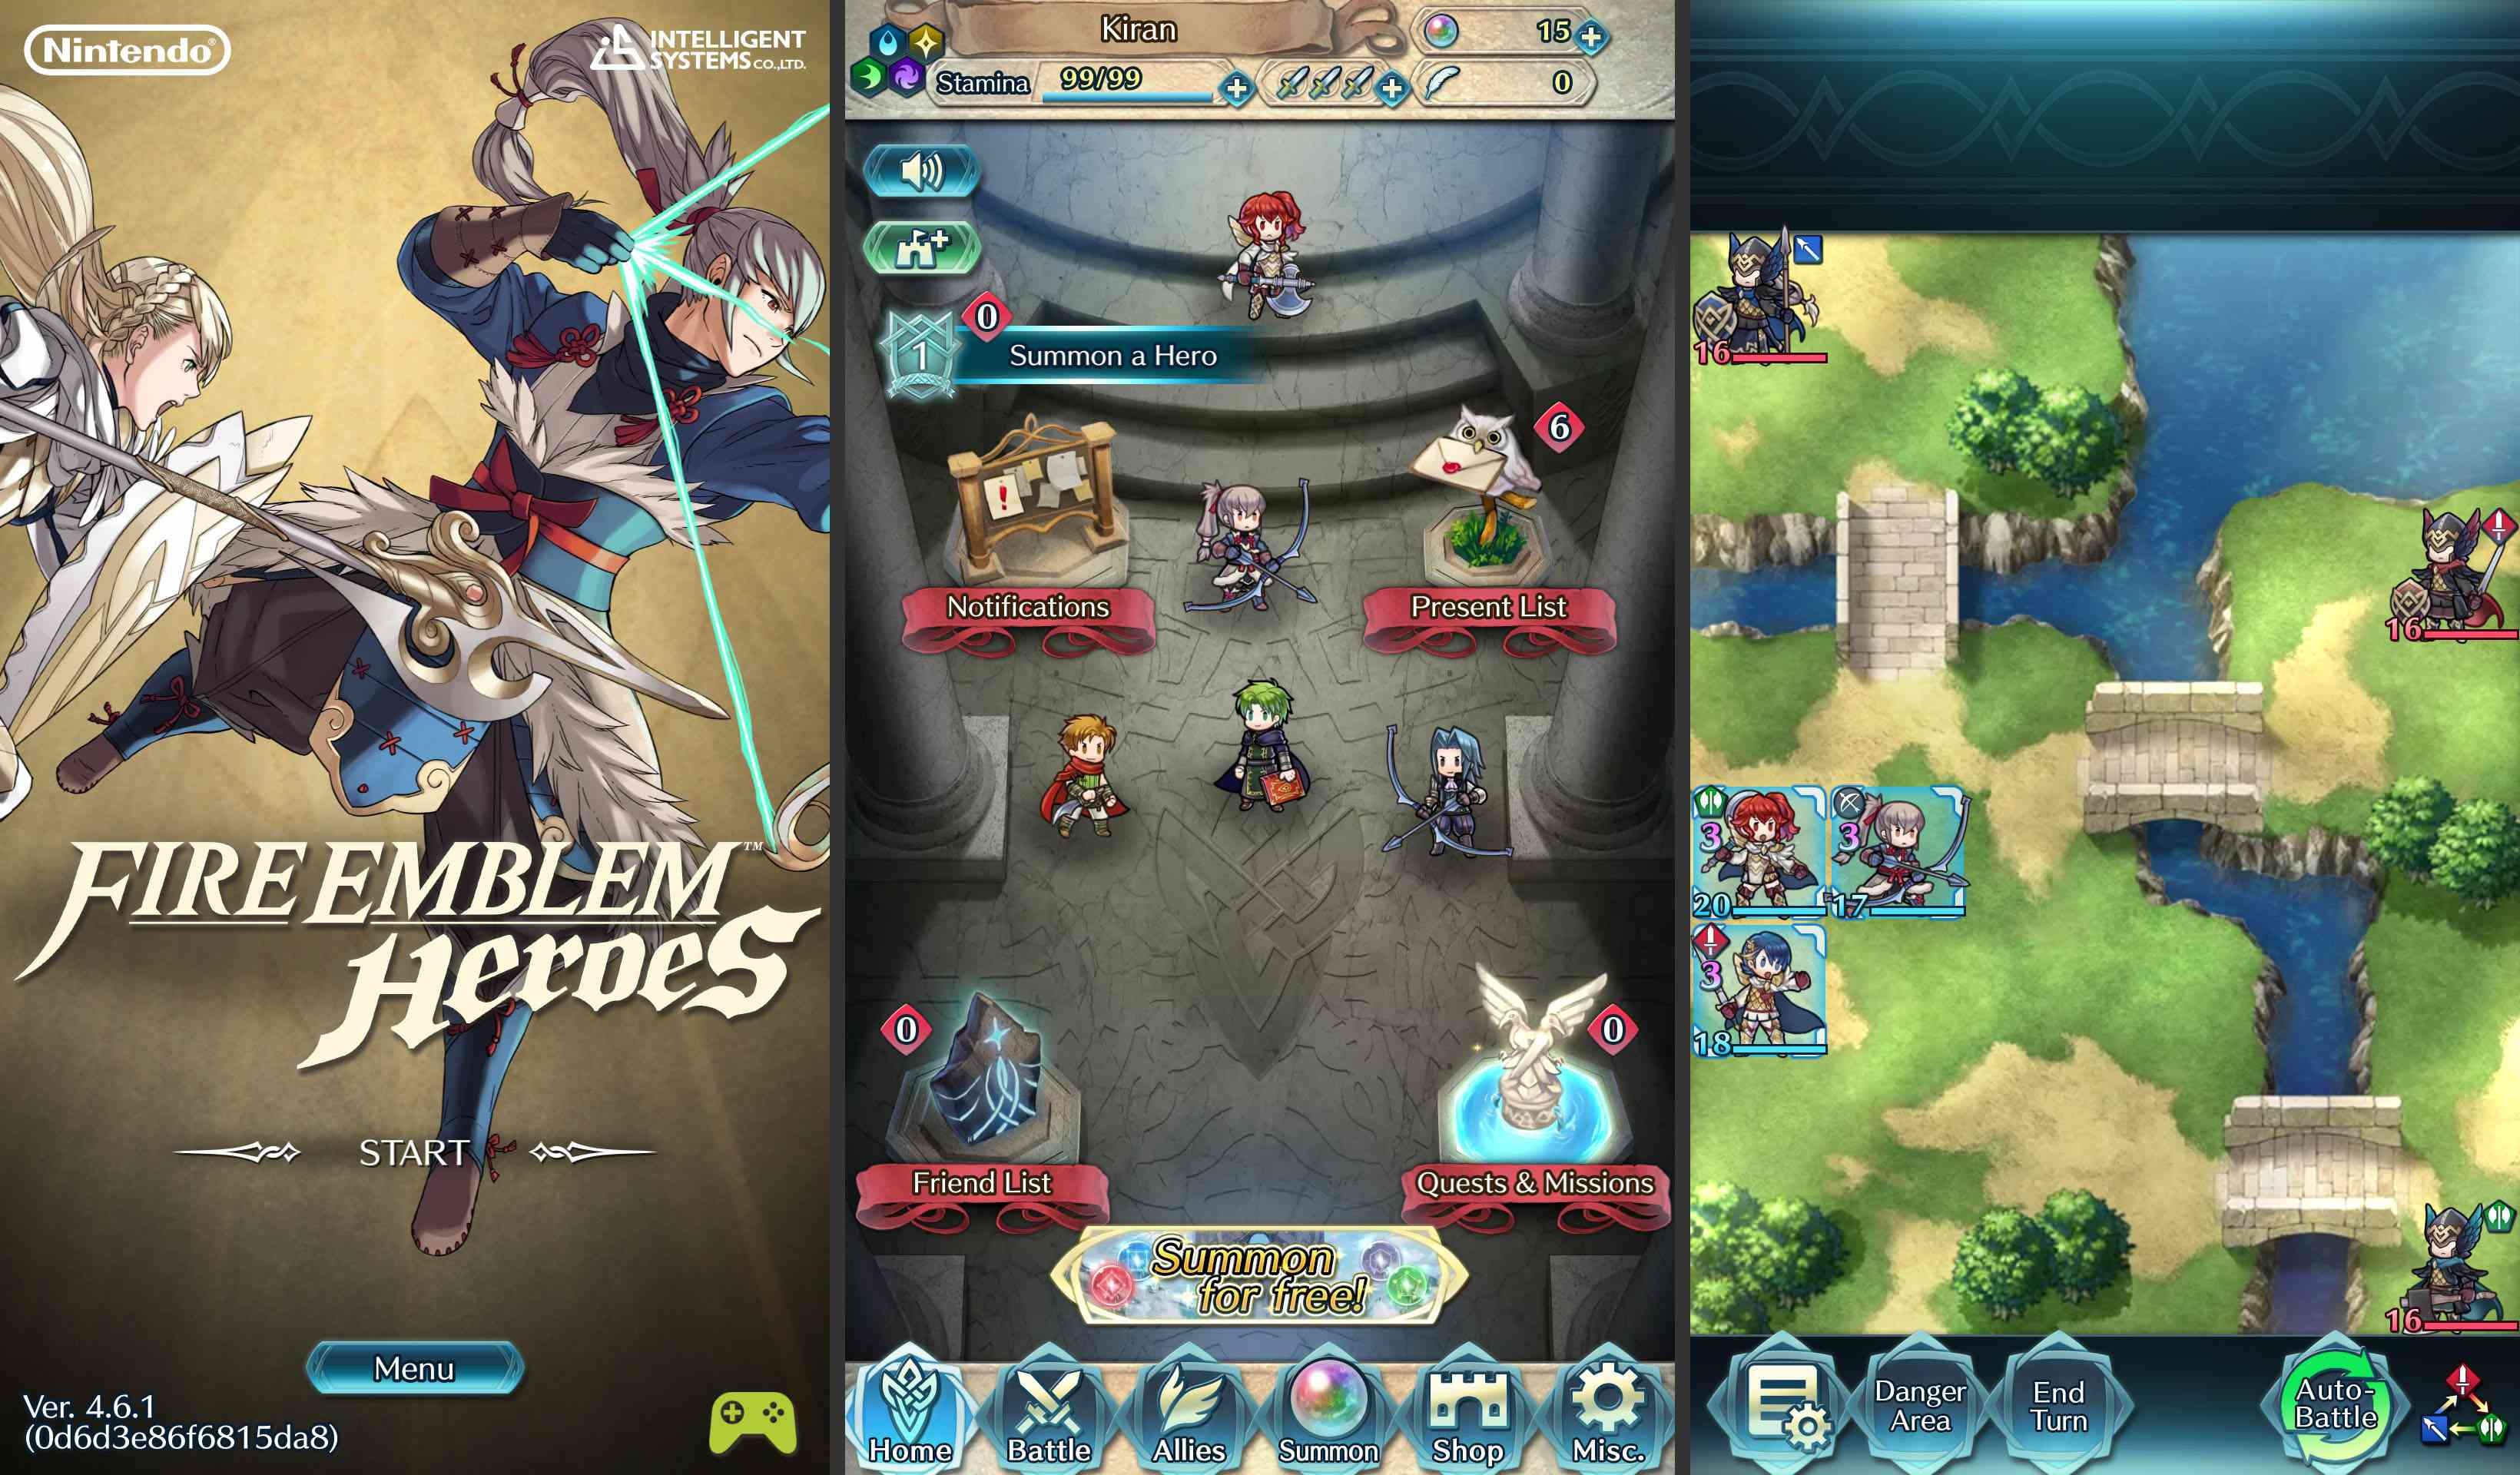 Screenshot from Fire Emblem Heroes for Android